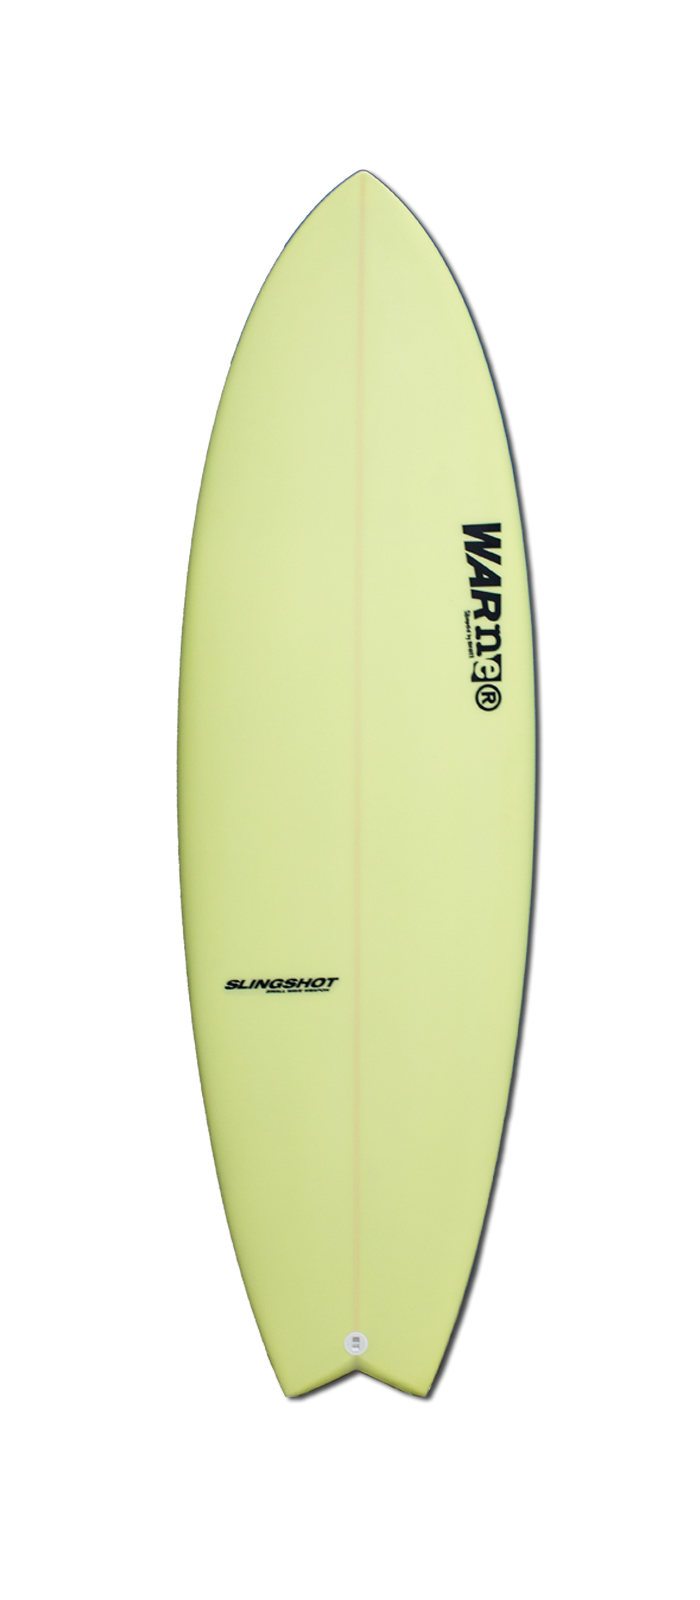 SLINGSHOT surfboard model deck